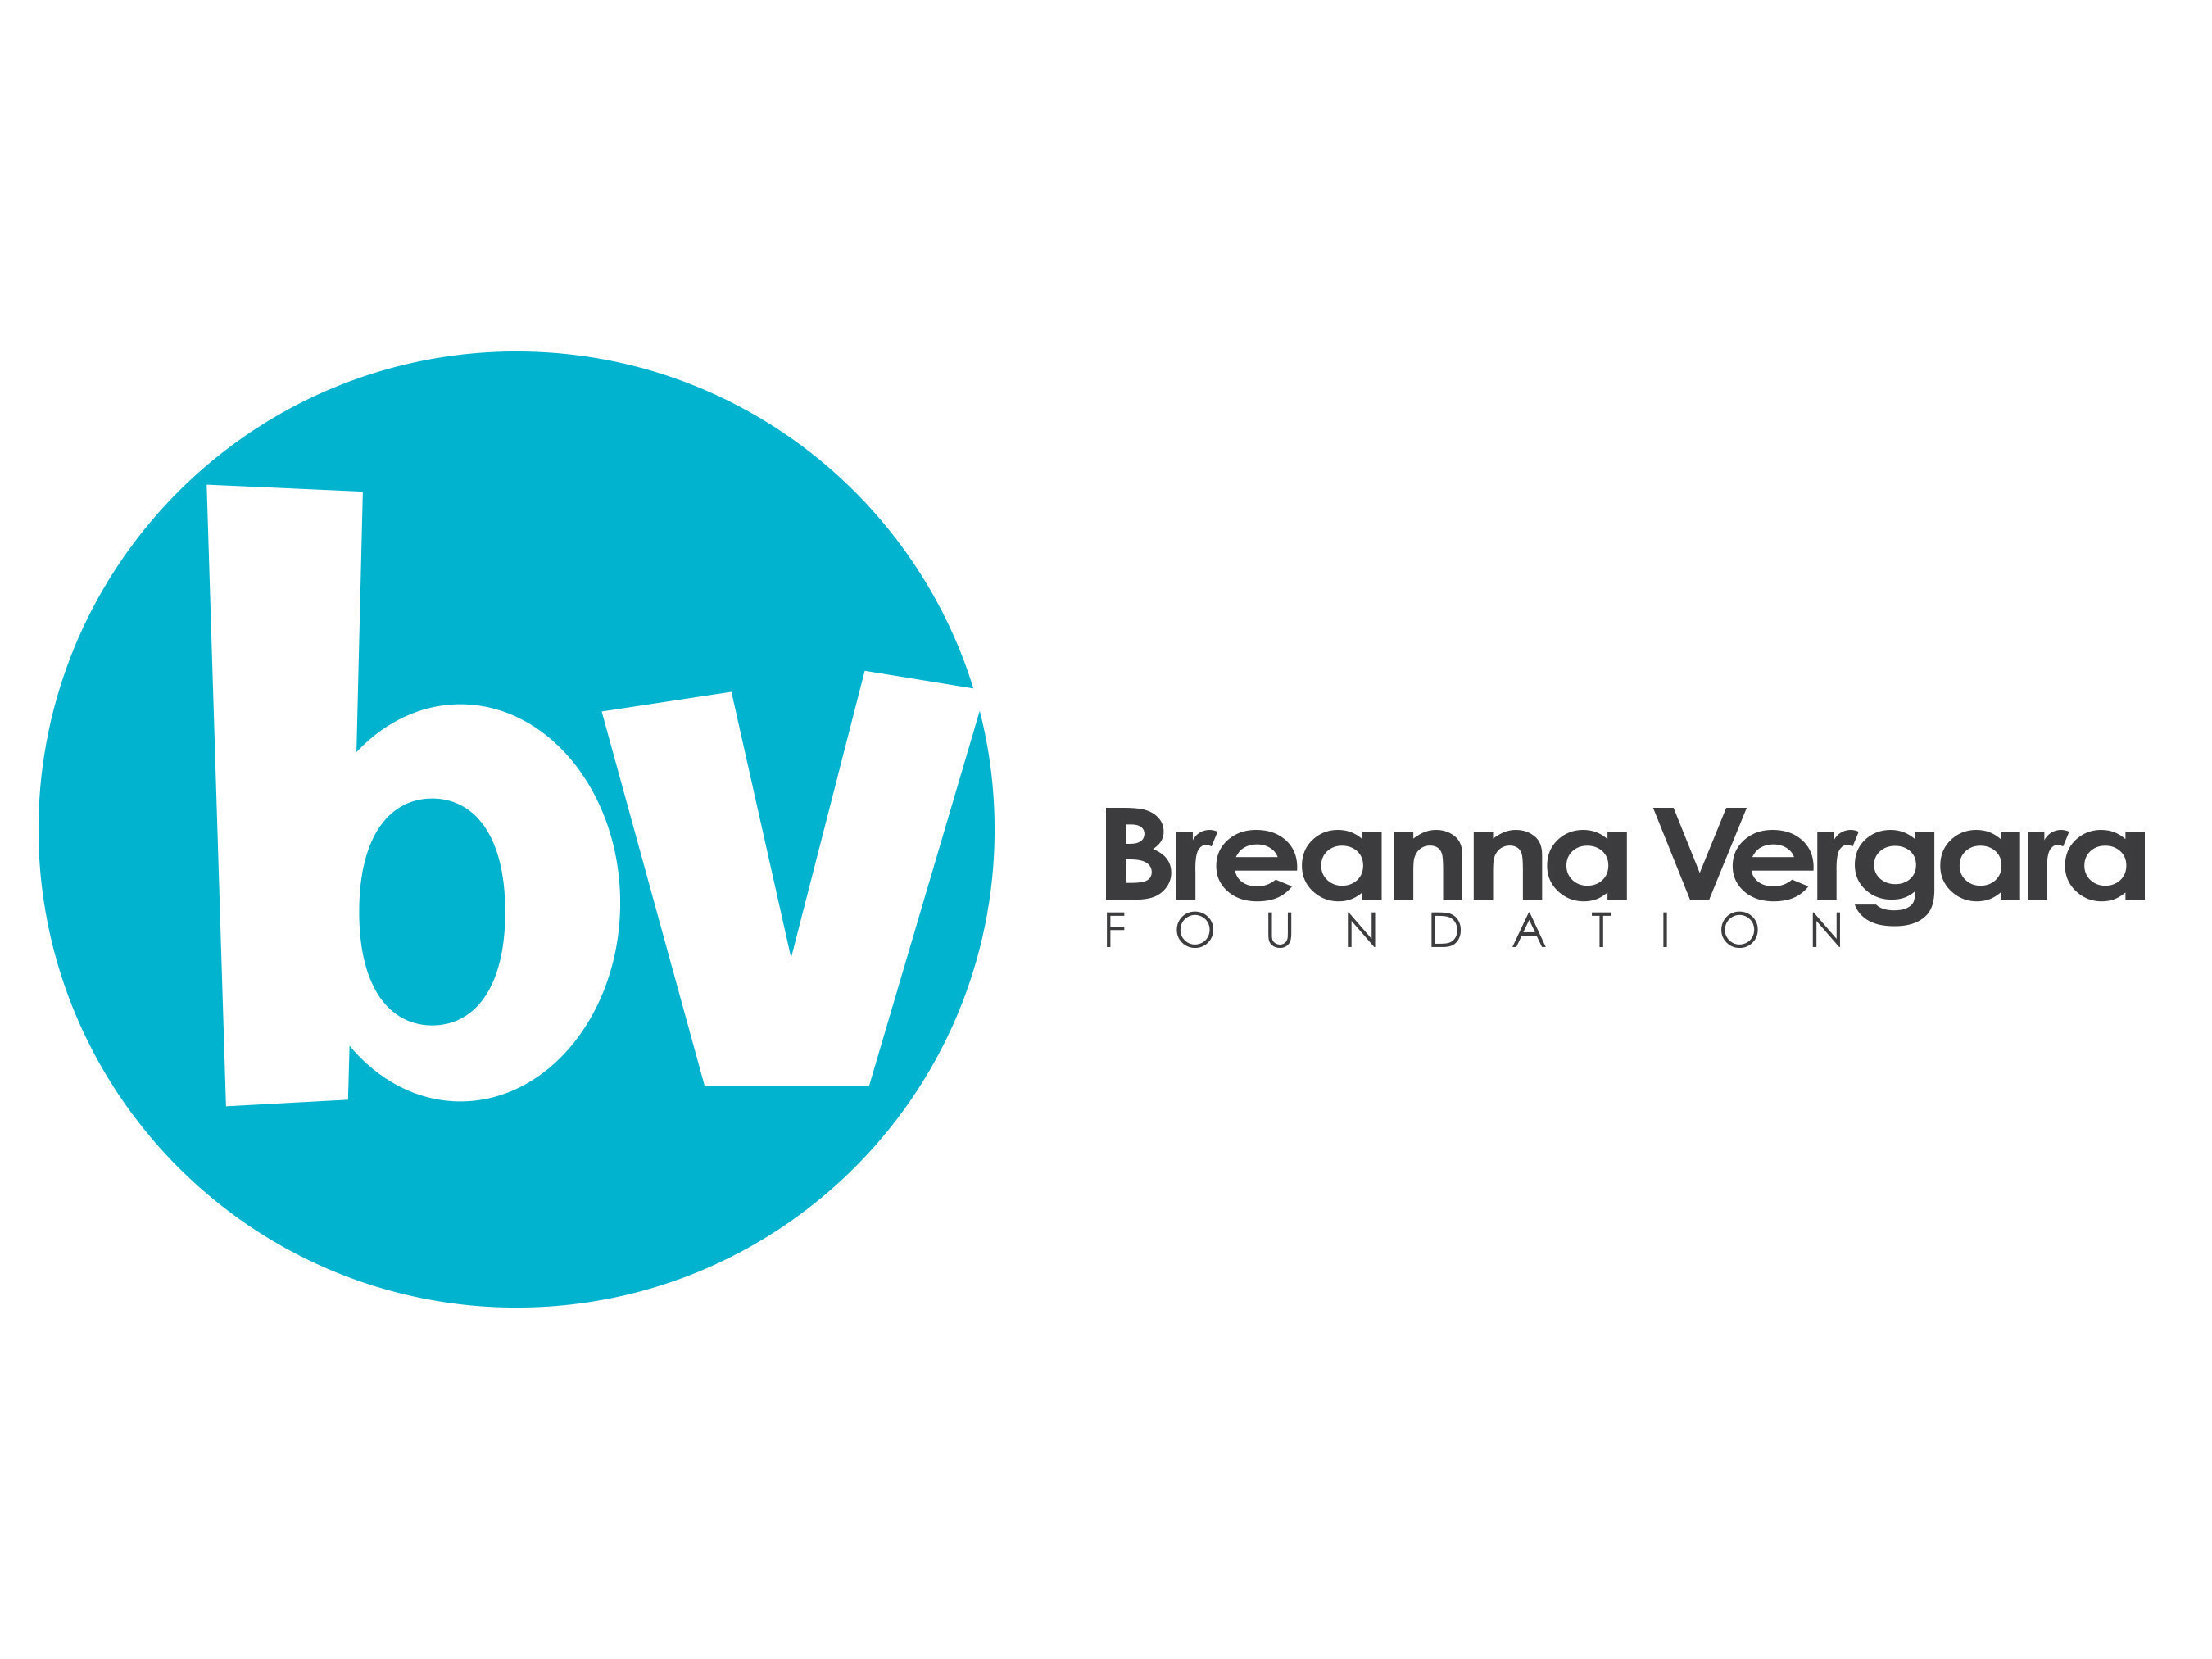 The Breanna Vergara Foundation promotes a healthy, happy, and passionate lifestyle by offering opportunities for children to participate in extracurricular activities while also creating awareness of heart screenings in an effort to identify kids at risk of sudden cardiac arrest.